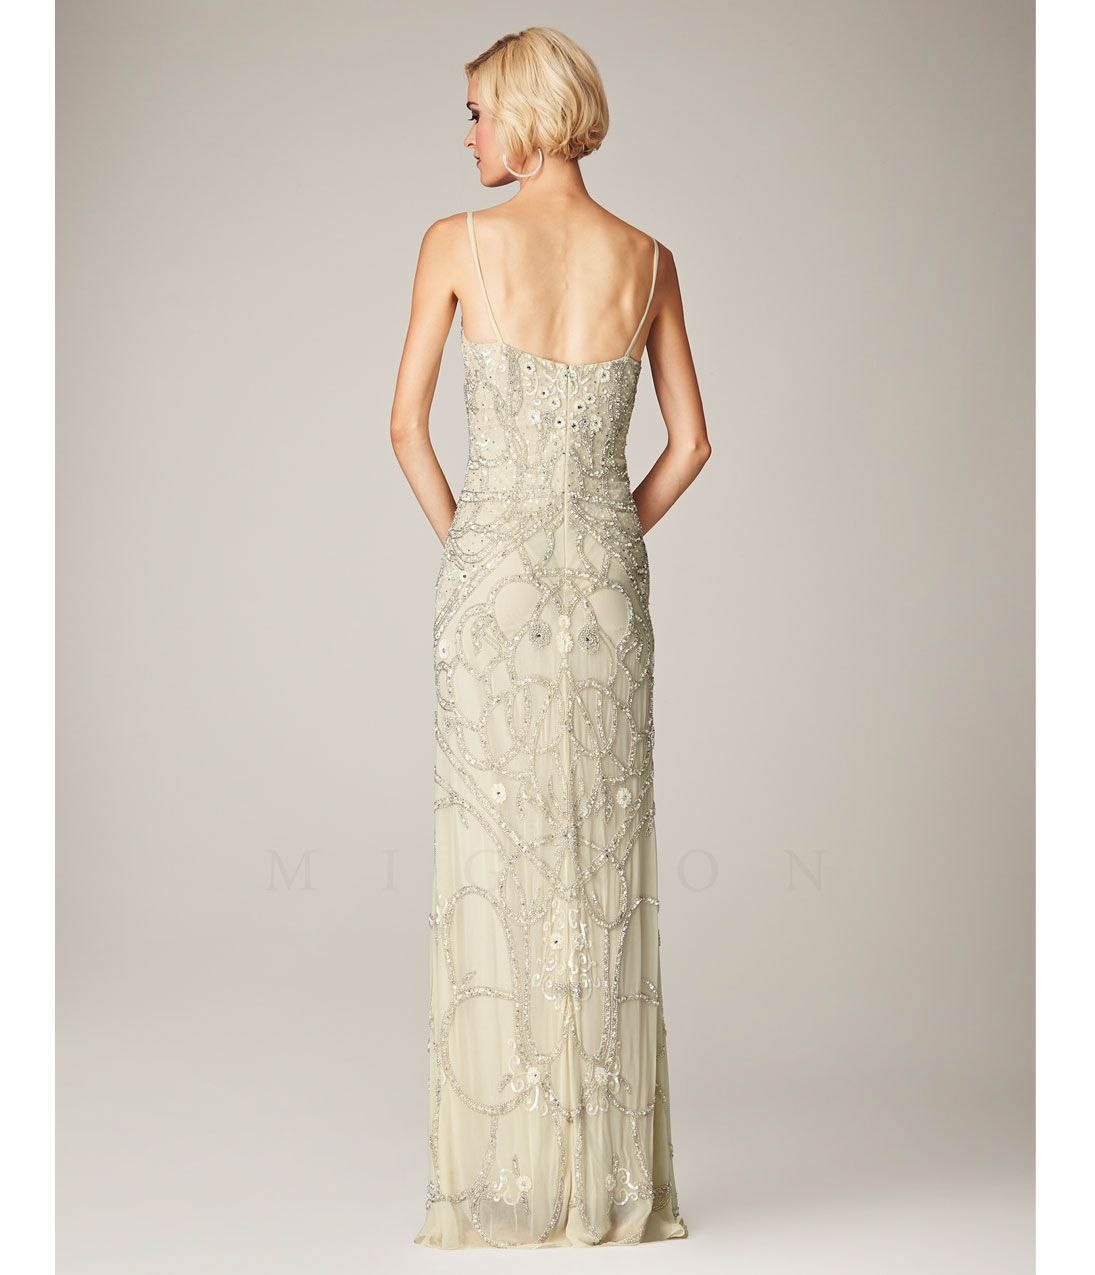 1930s style wedding dresses  Vanilla Beaded Spaghetti Strap Evening Gown  Putting the cart